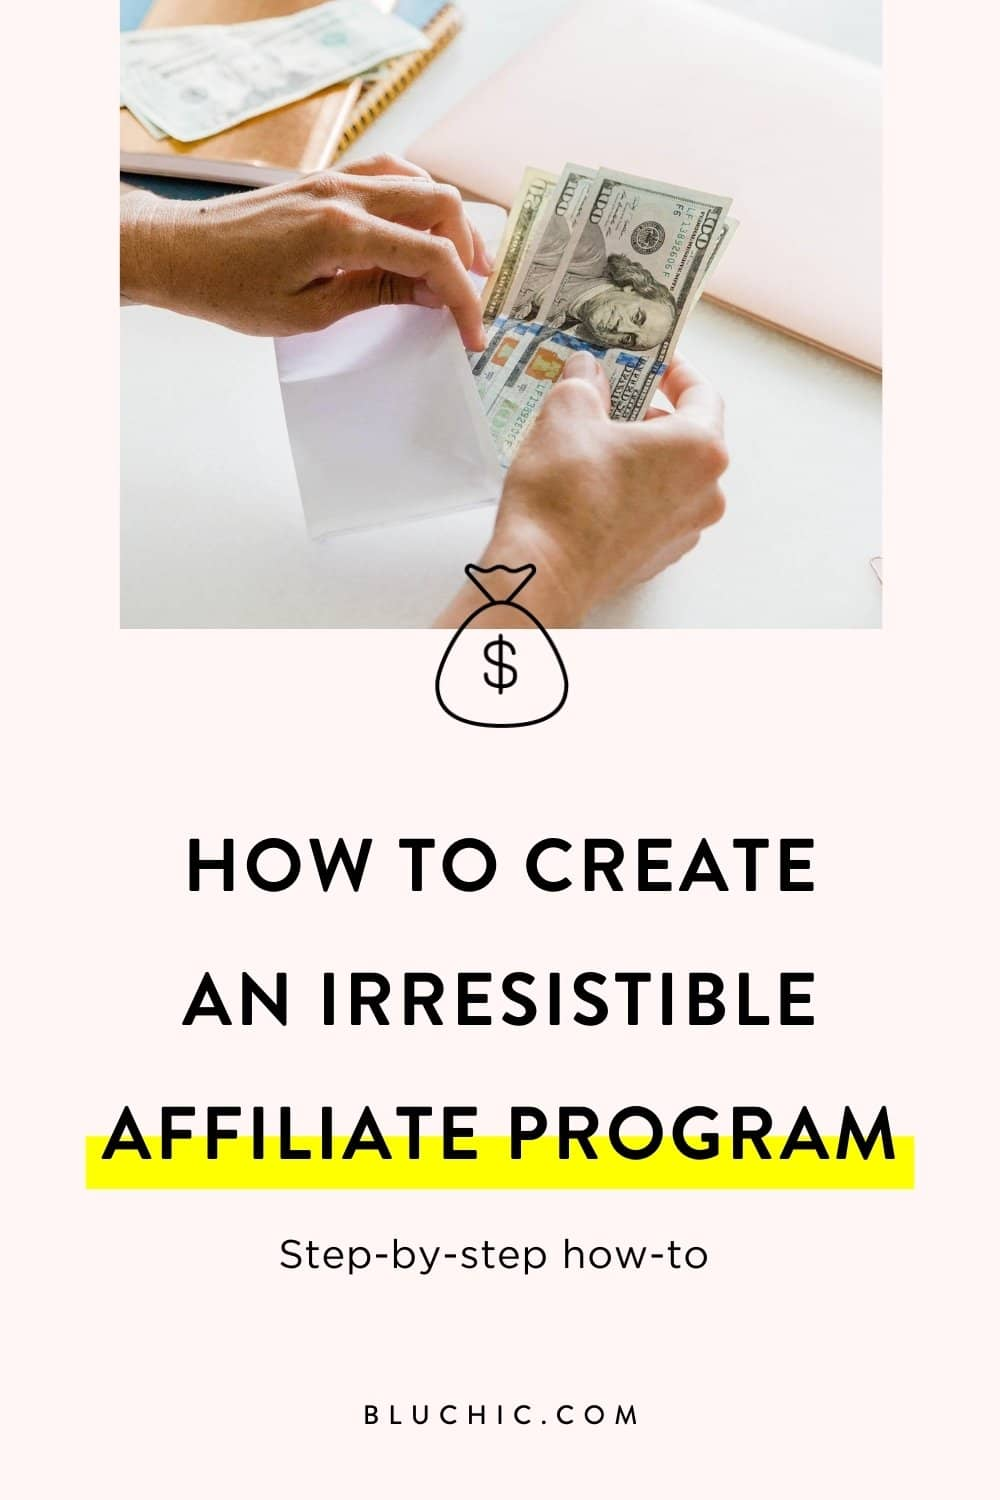 How to Create an Affiliate Program | Ready to create an affiliate program? Bluchic is sharing a step-by-step how-to for creating an affiliate program and making extra income!